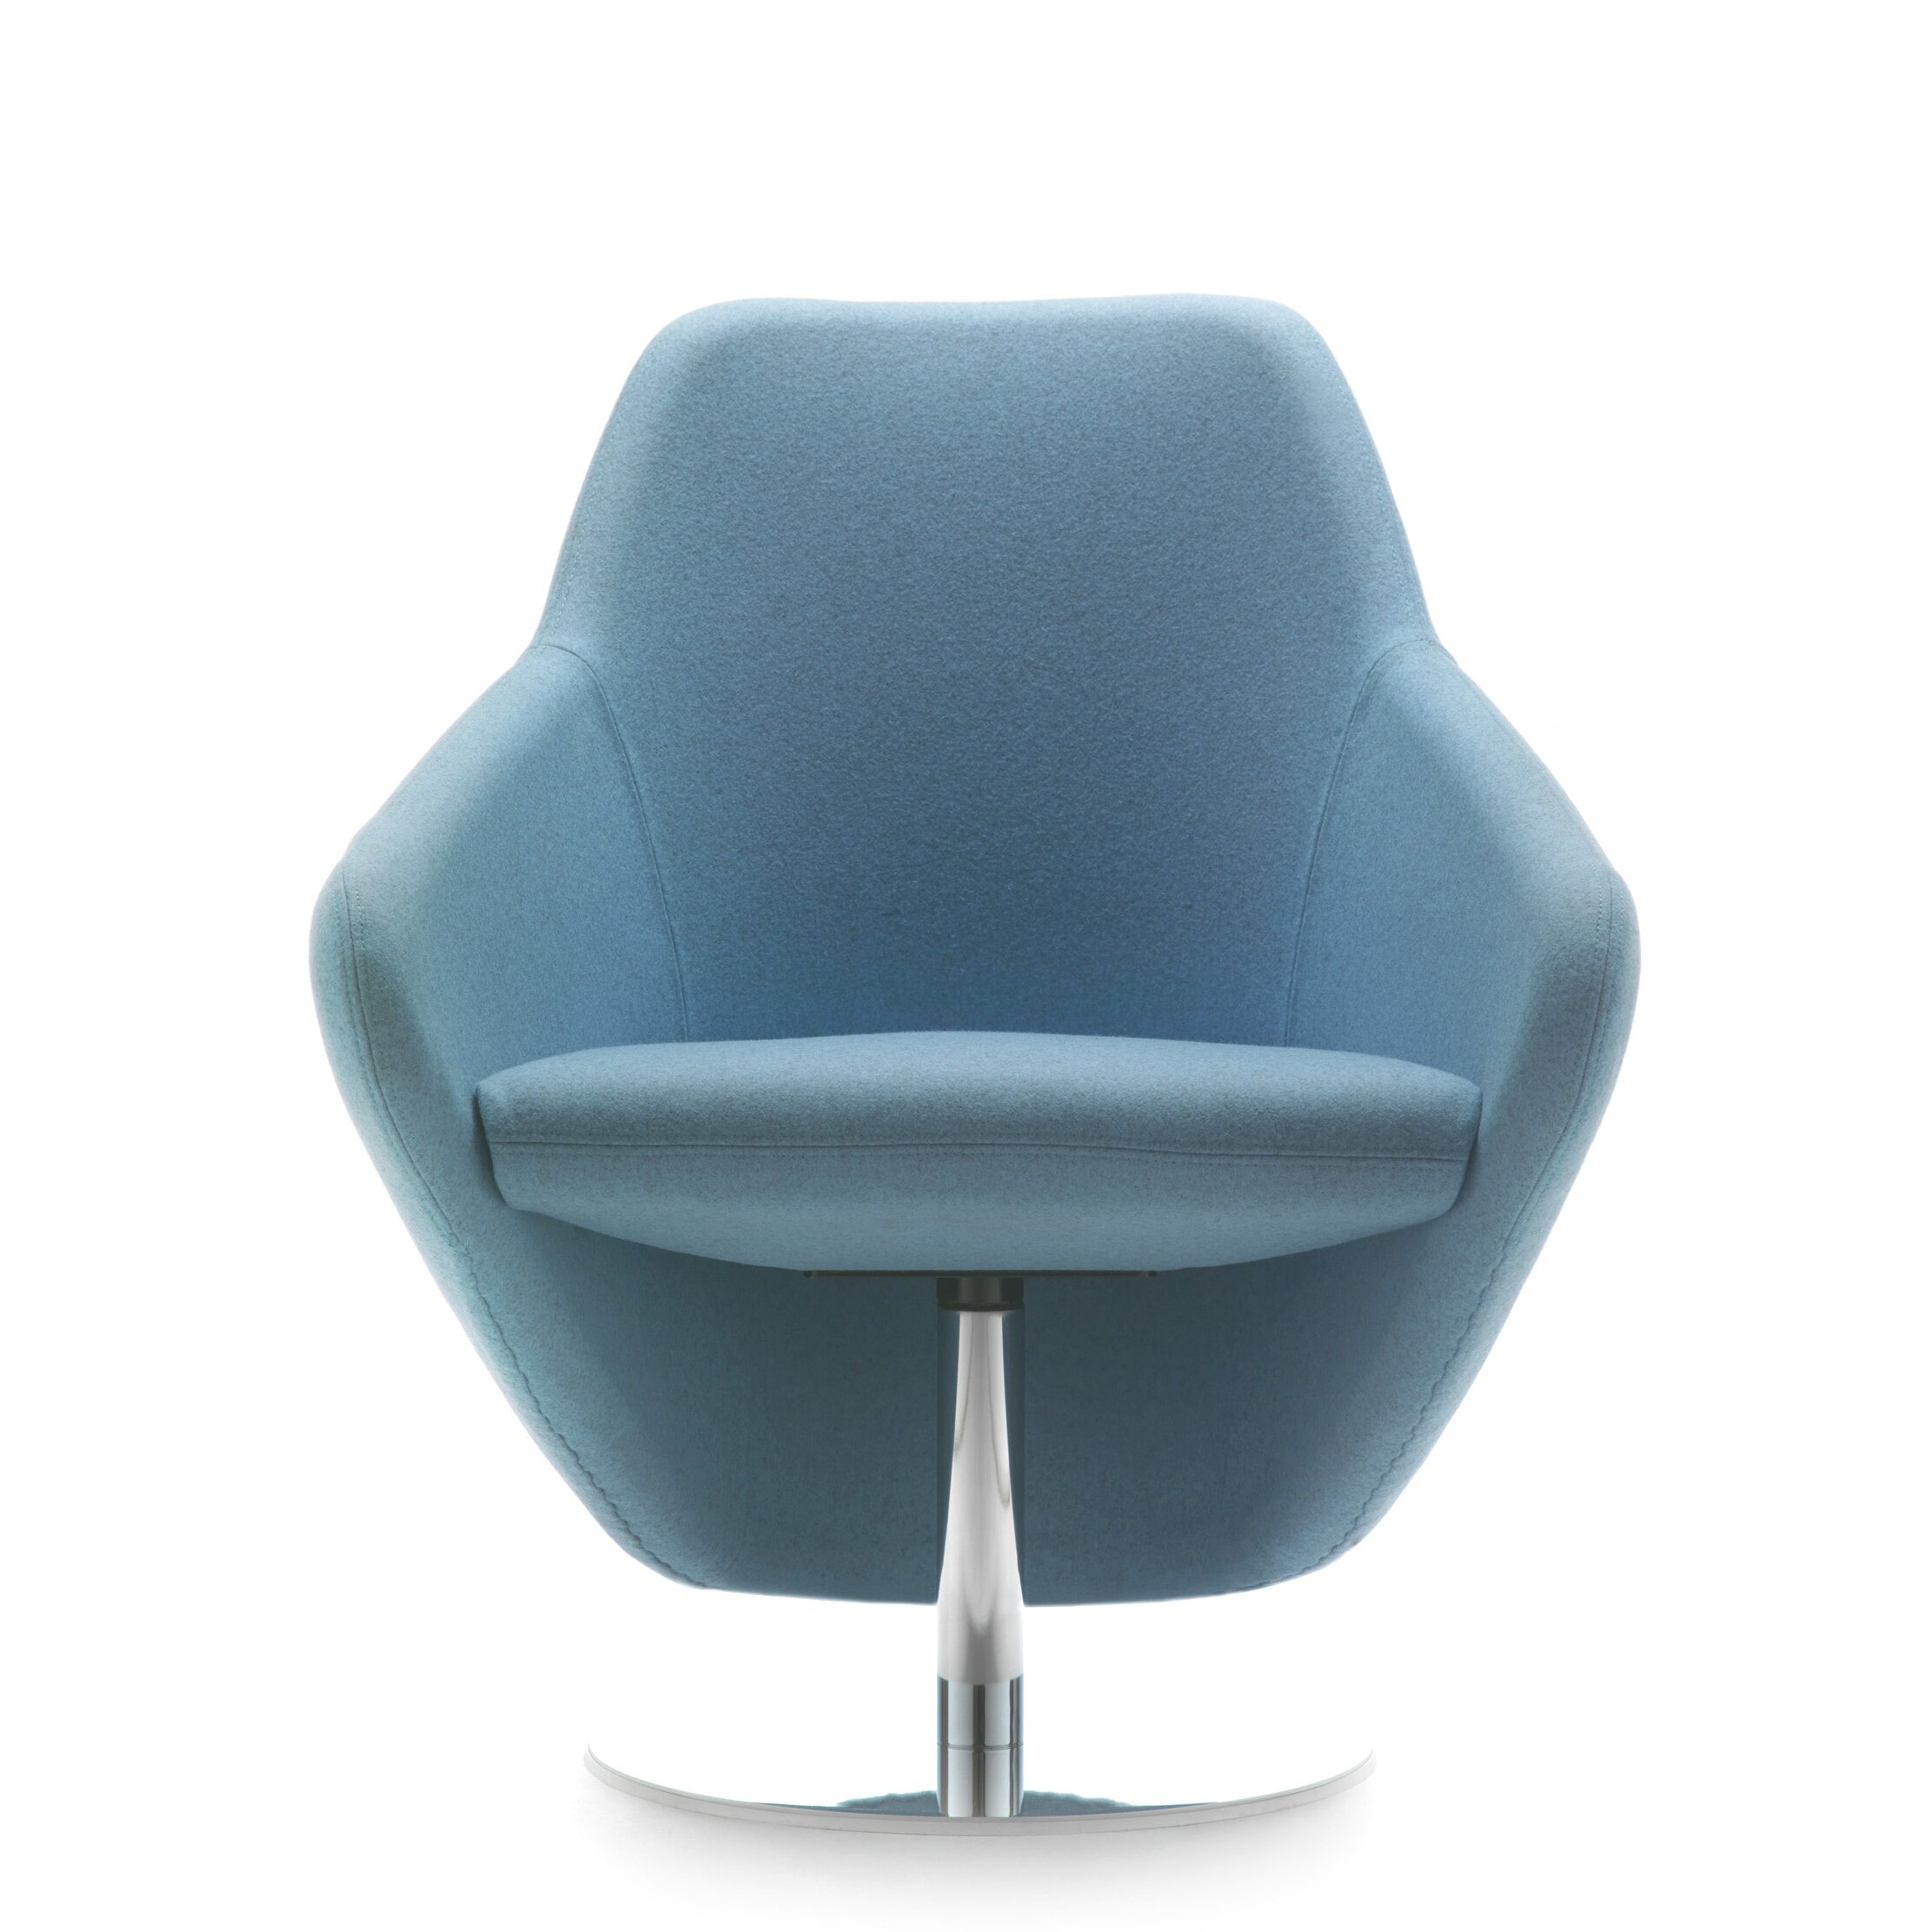 Segis U S Taxido Swivel Lounge Chair